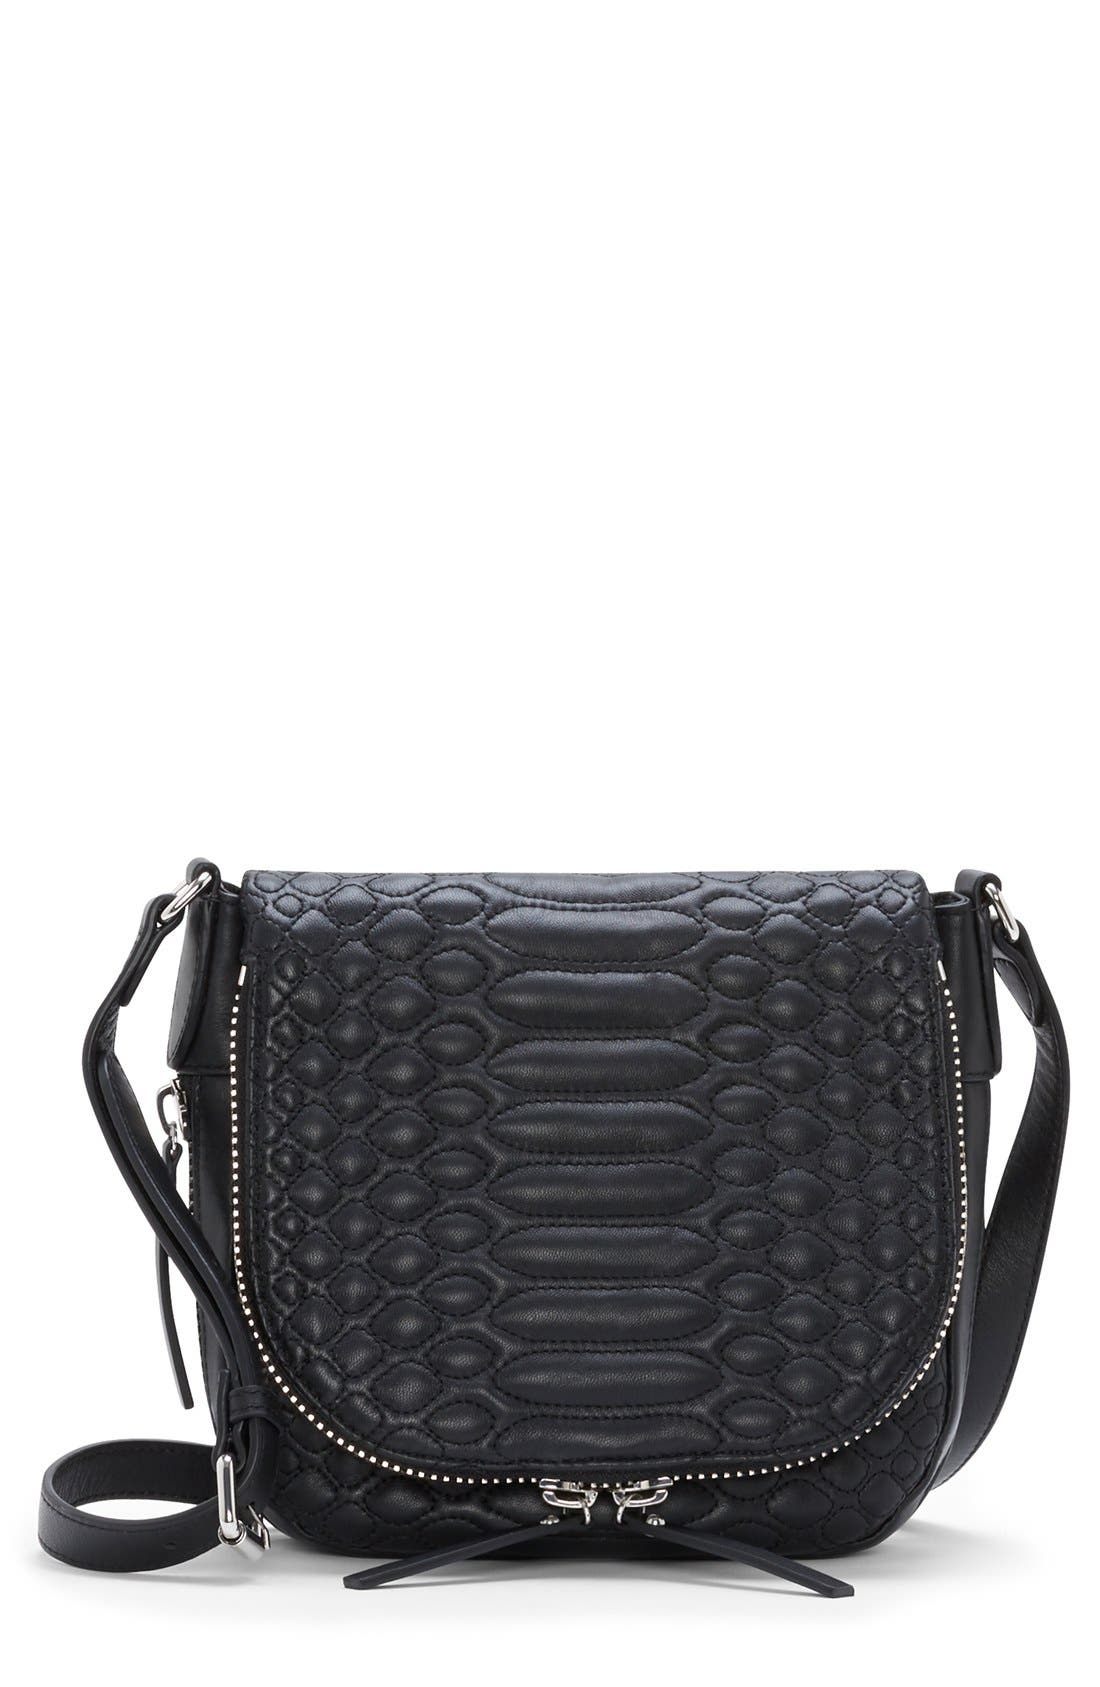 Vince Camuto Baily Quilted Leather Crossbody Bag Nordstrom